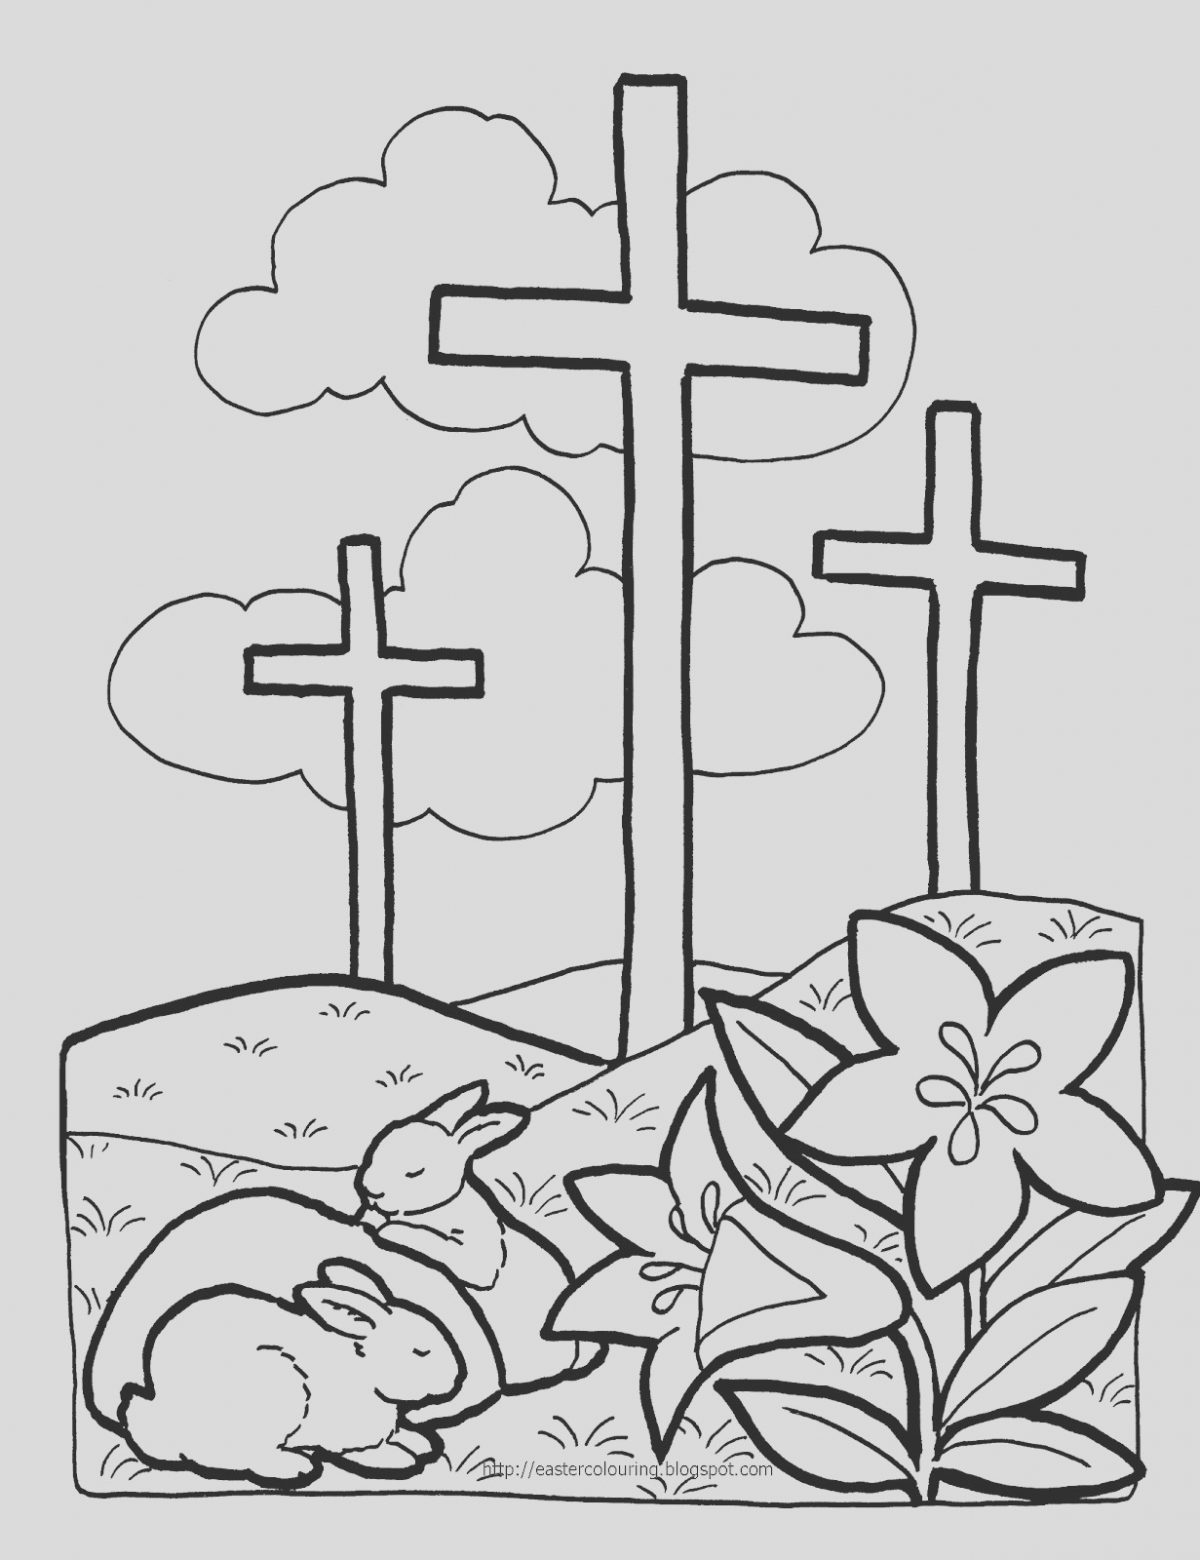 Printable Christian Coloring Page Lovely Free Printable Christian Coloring Pages for Kids Best